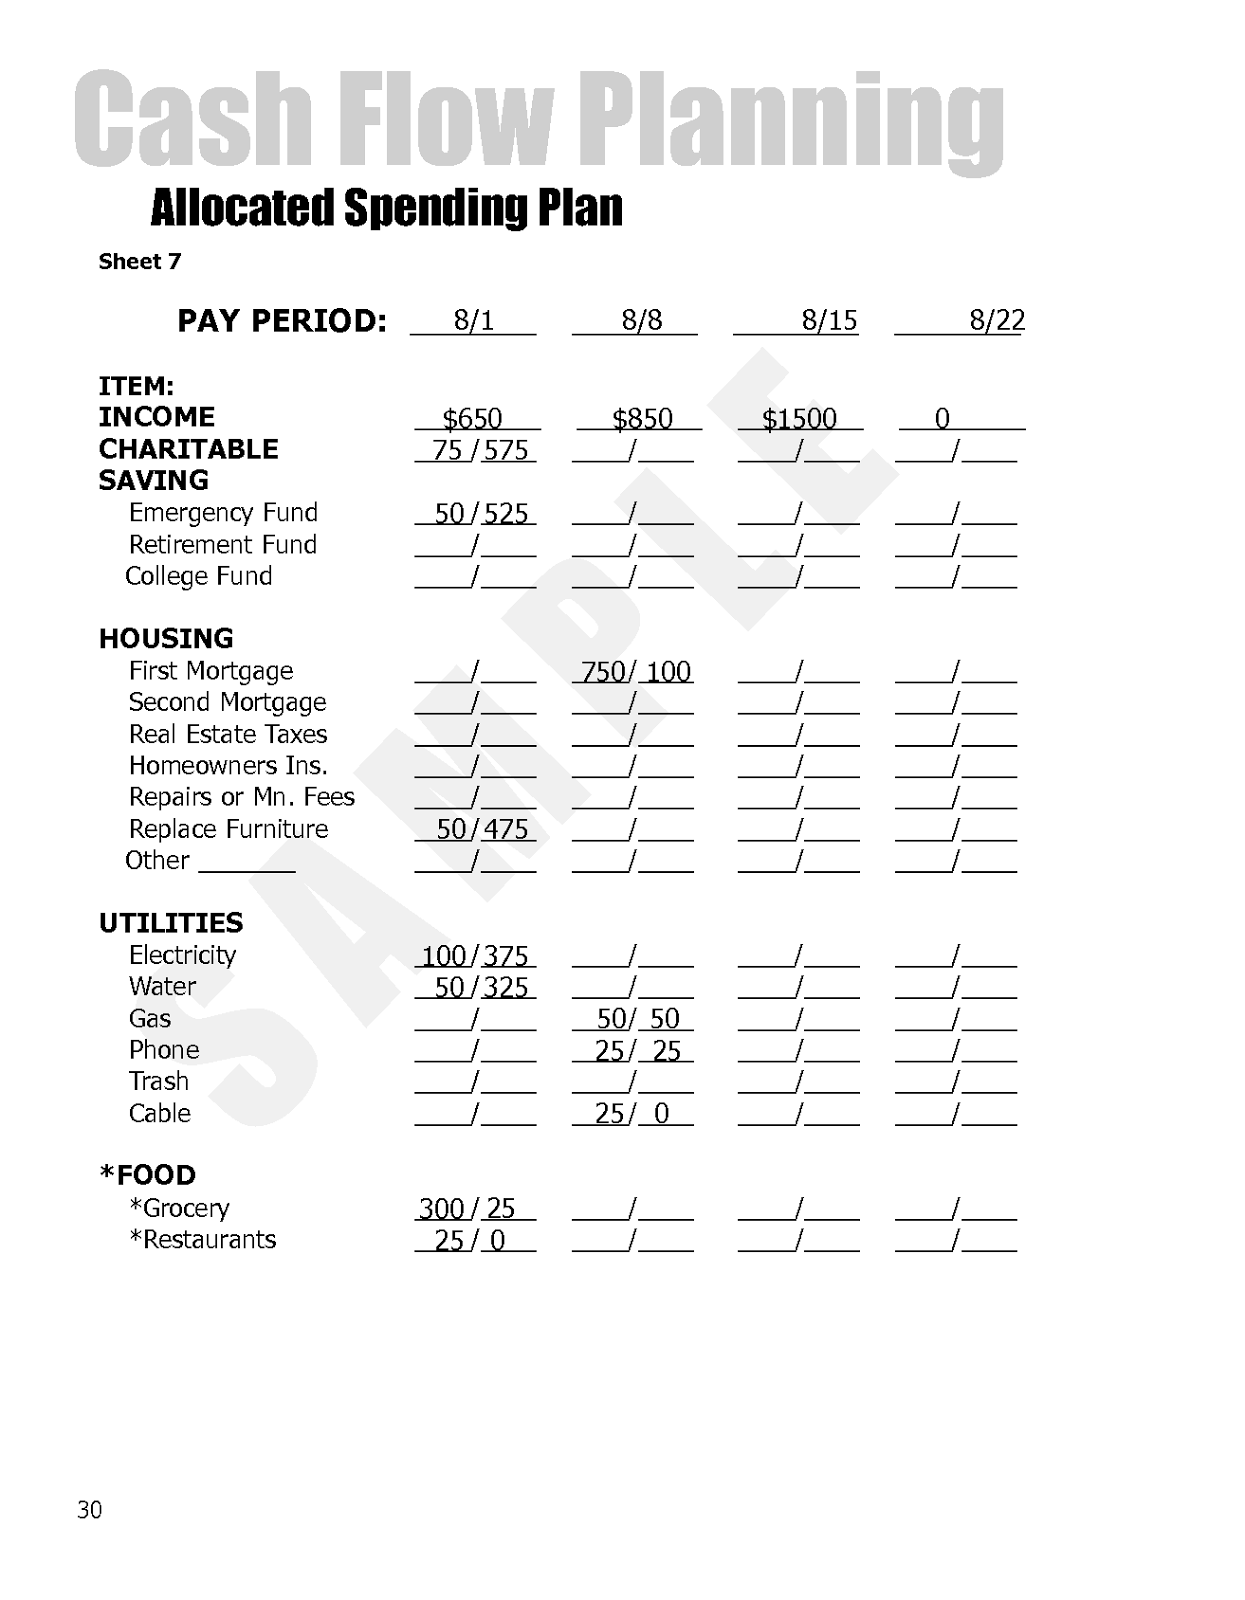 Dave Ramsey Allocated Spending Plan 1 245 1 600 Pixels